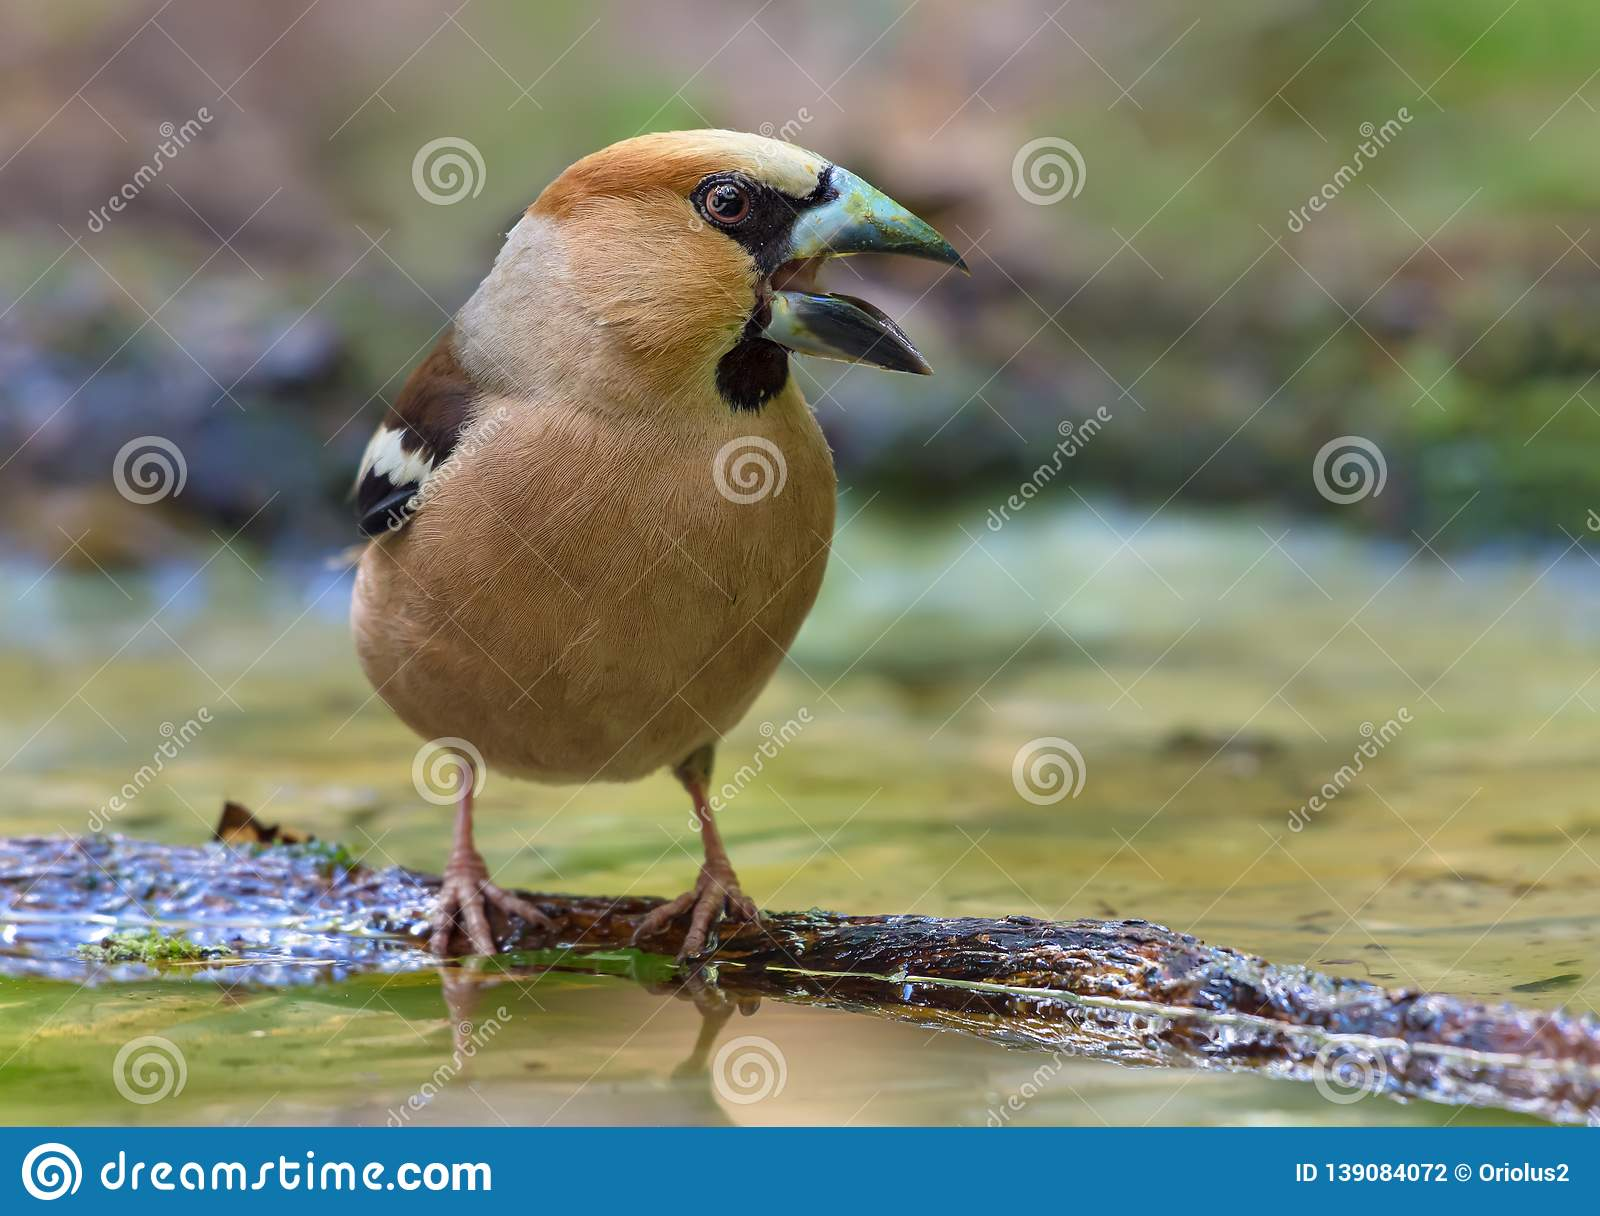 Male hawfinch shouts loudly on small stick on water surface